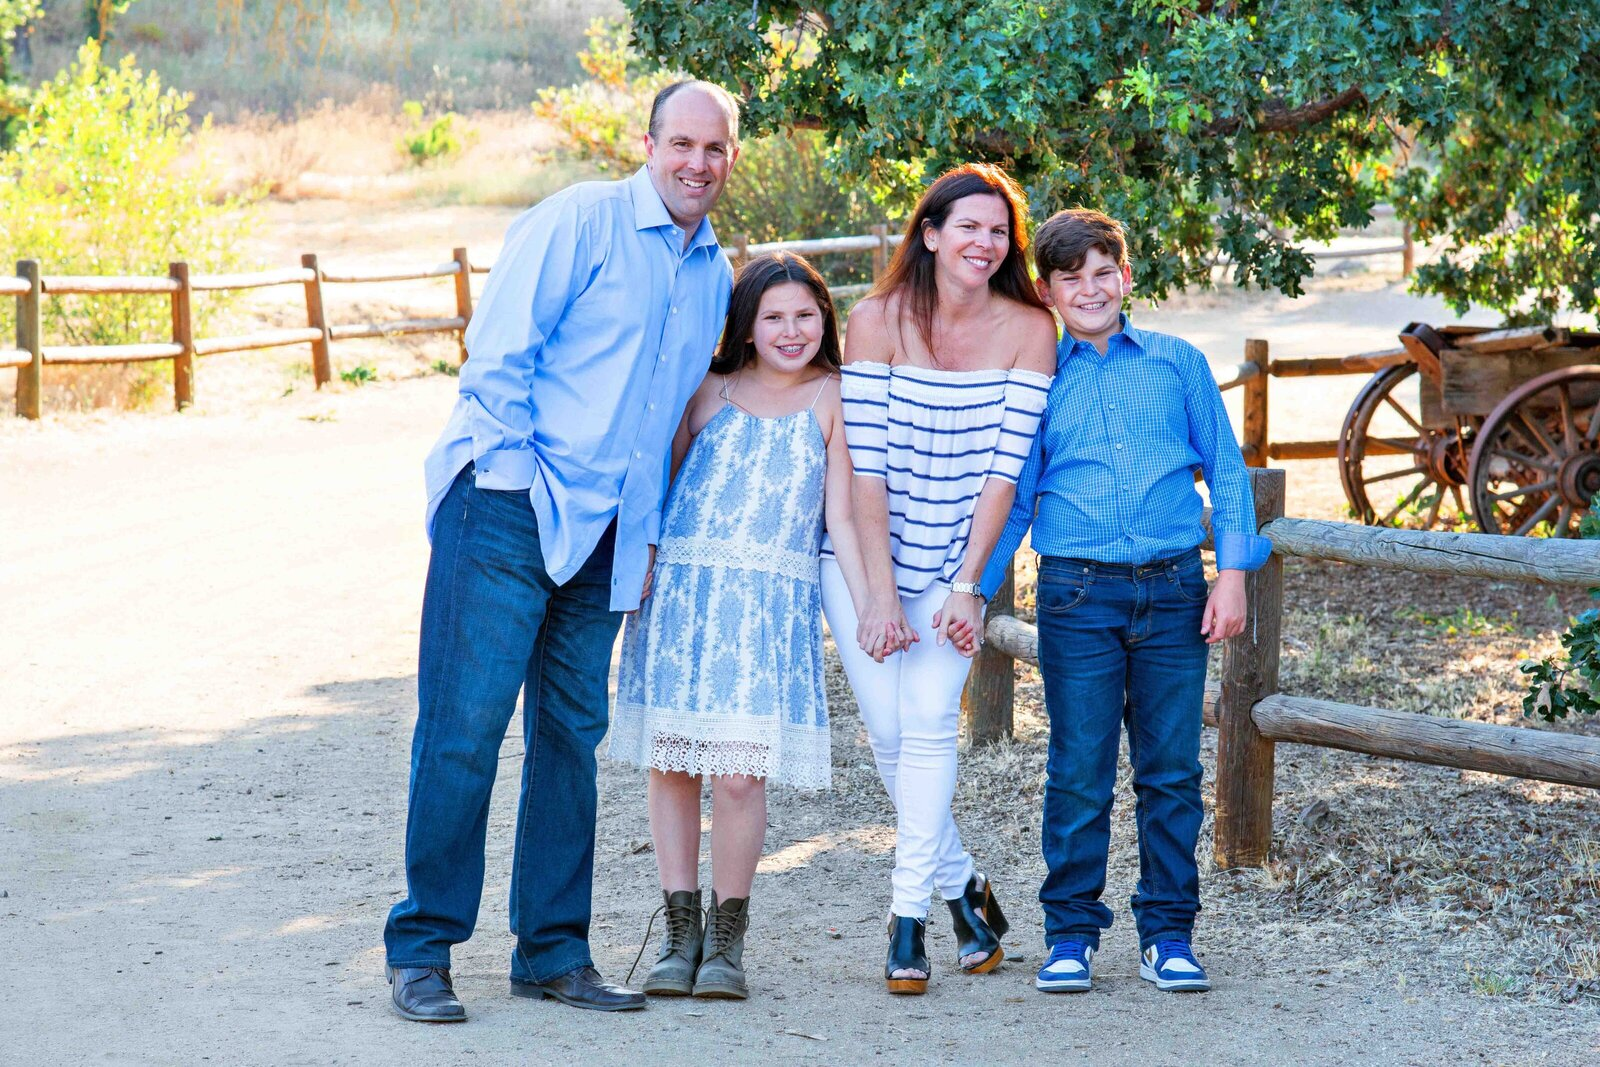 Maria-McCarthy-Photography-Paramount-Ranch-family-portrait